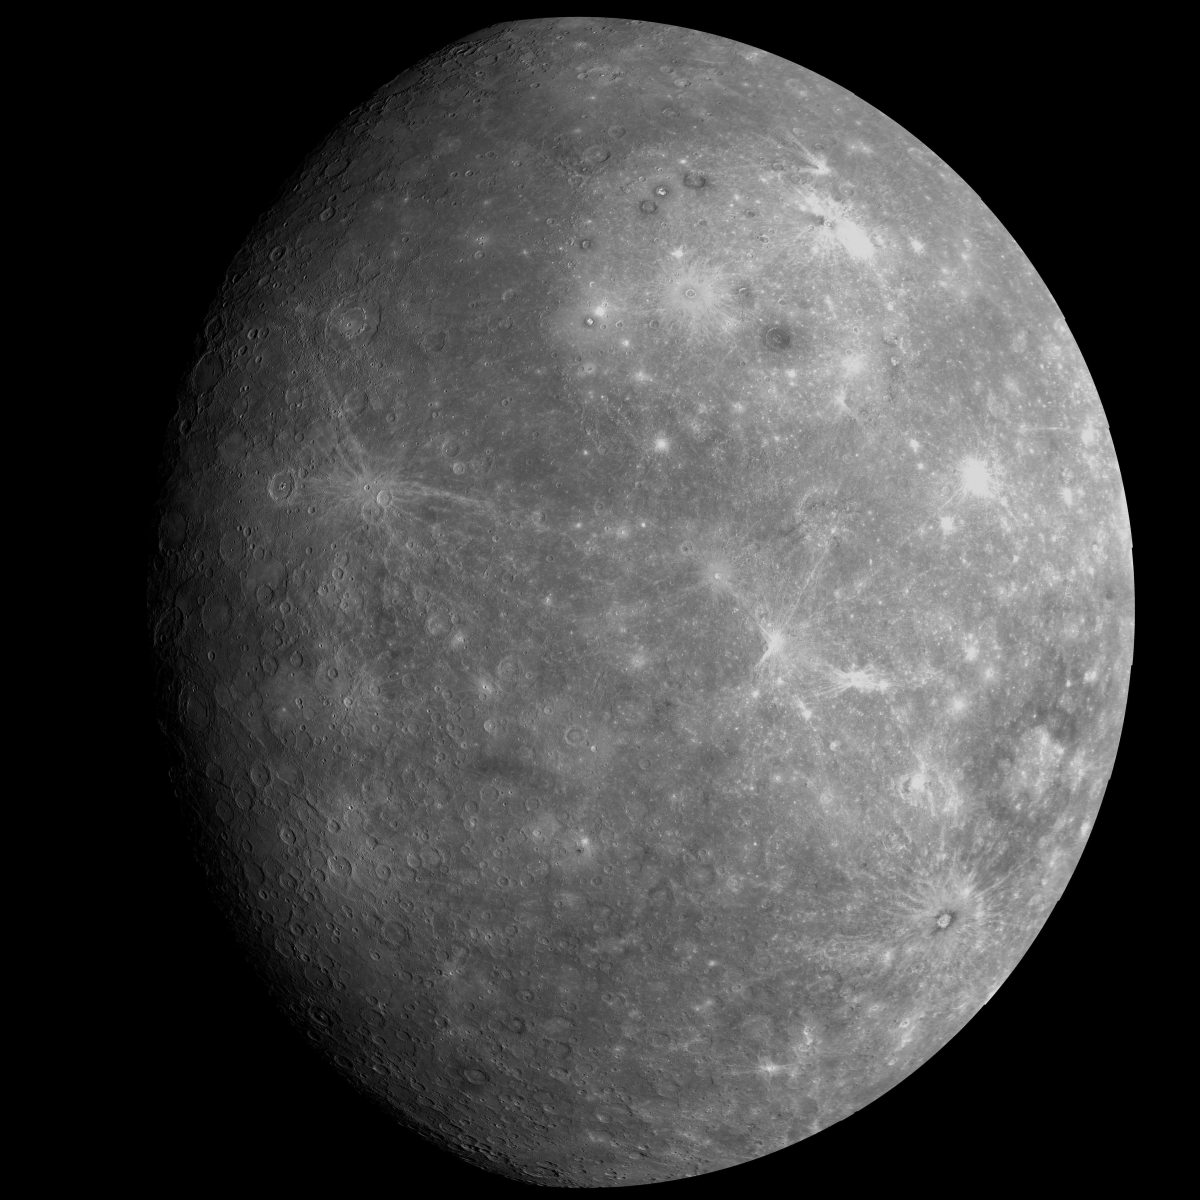 Mercury - Photographed on the 1st fly-by of the Messenger Probe in January 2008